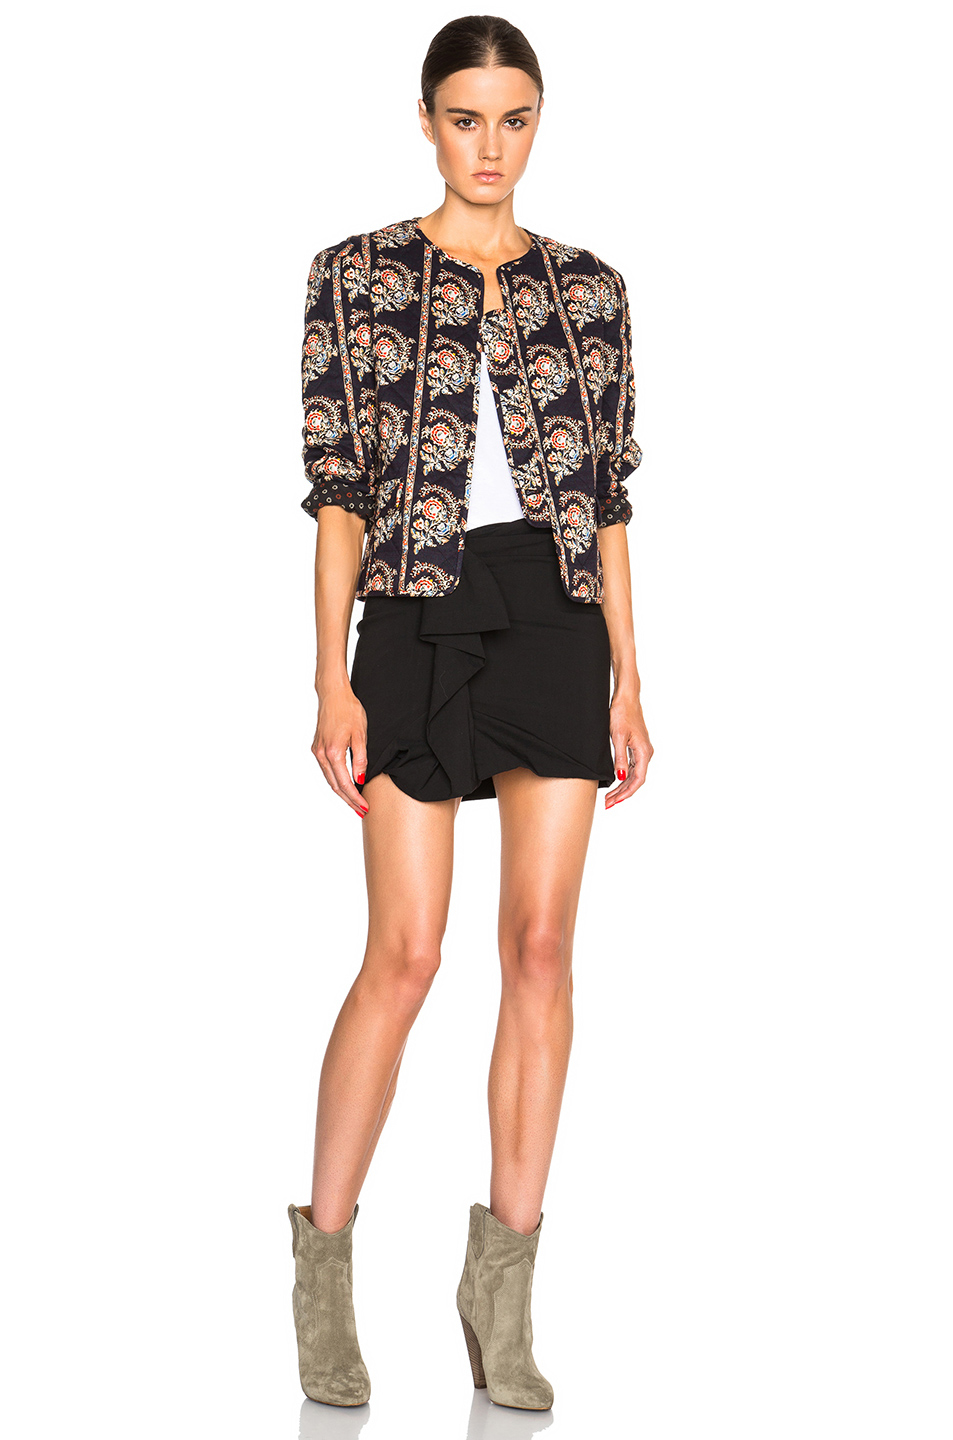 Lyst - Étoile Isabel Marant Elmer Quilted Jacket in Black